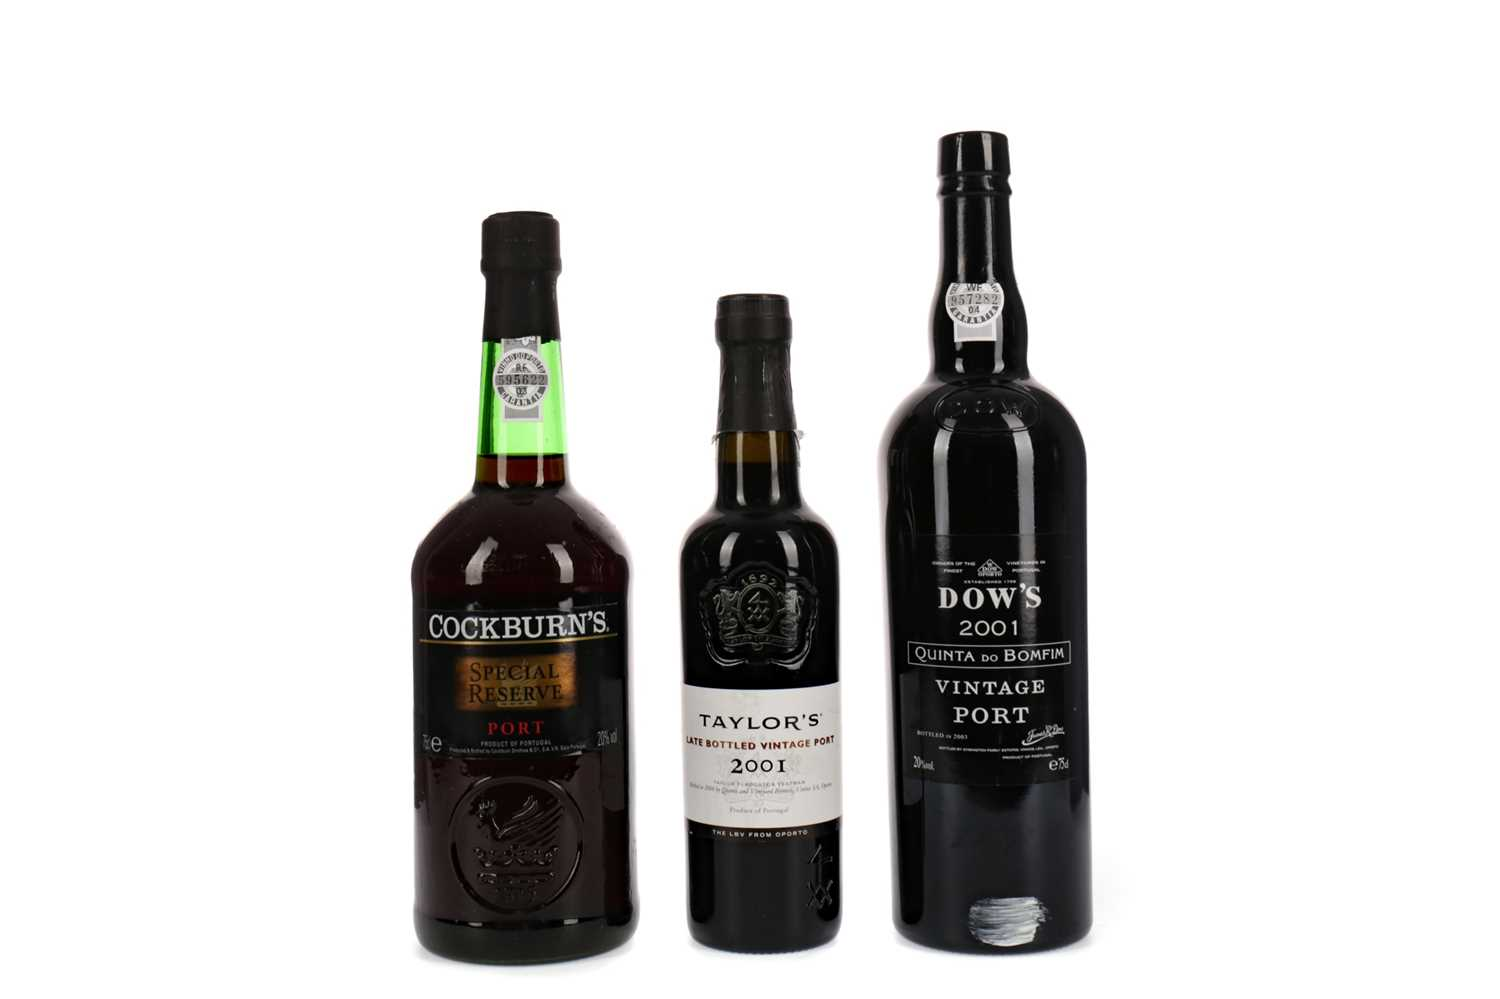 Lot 55 - DOW'S 2001, TAYLOR'S 2001 AND COCKBURN'S SPECIAL RESERVE